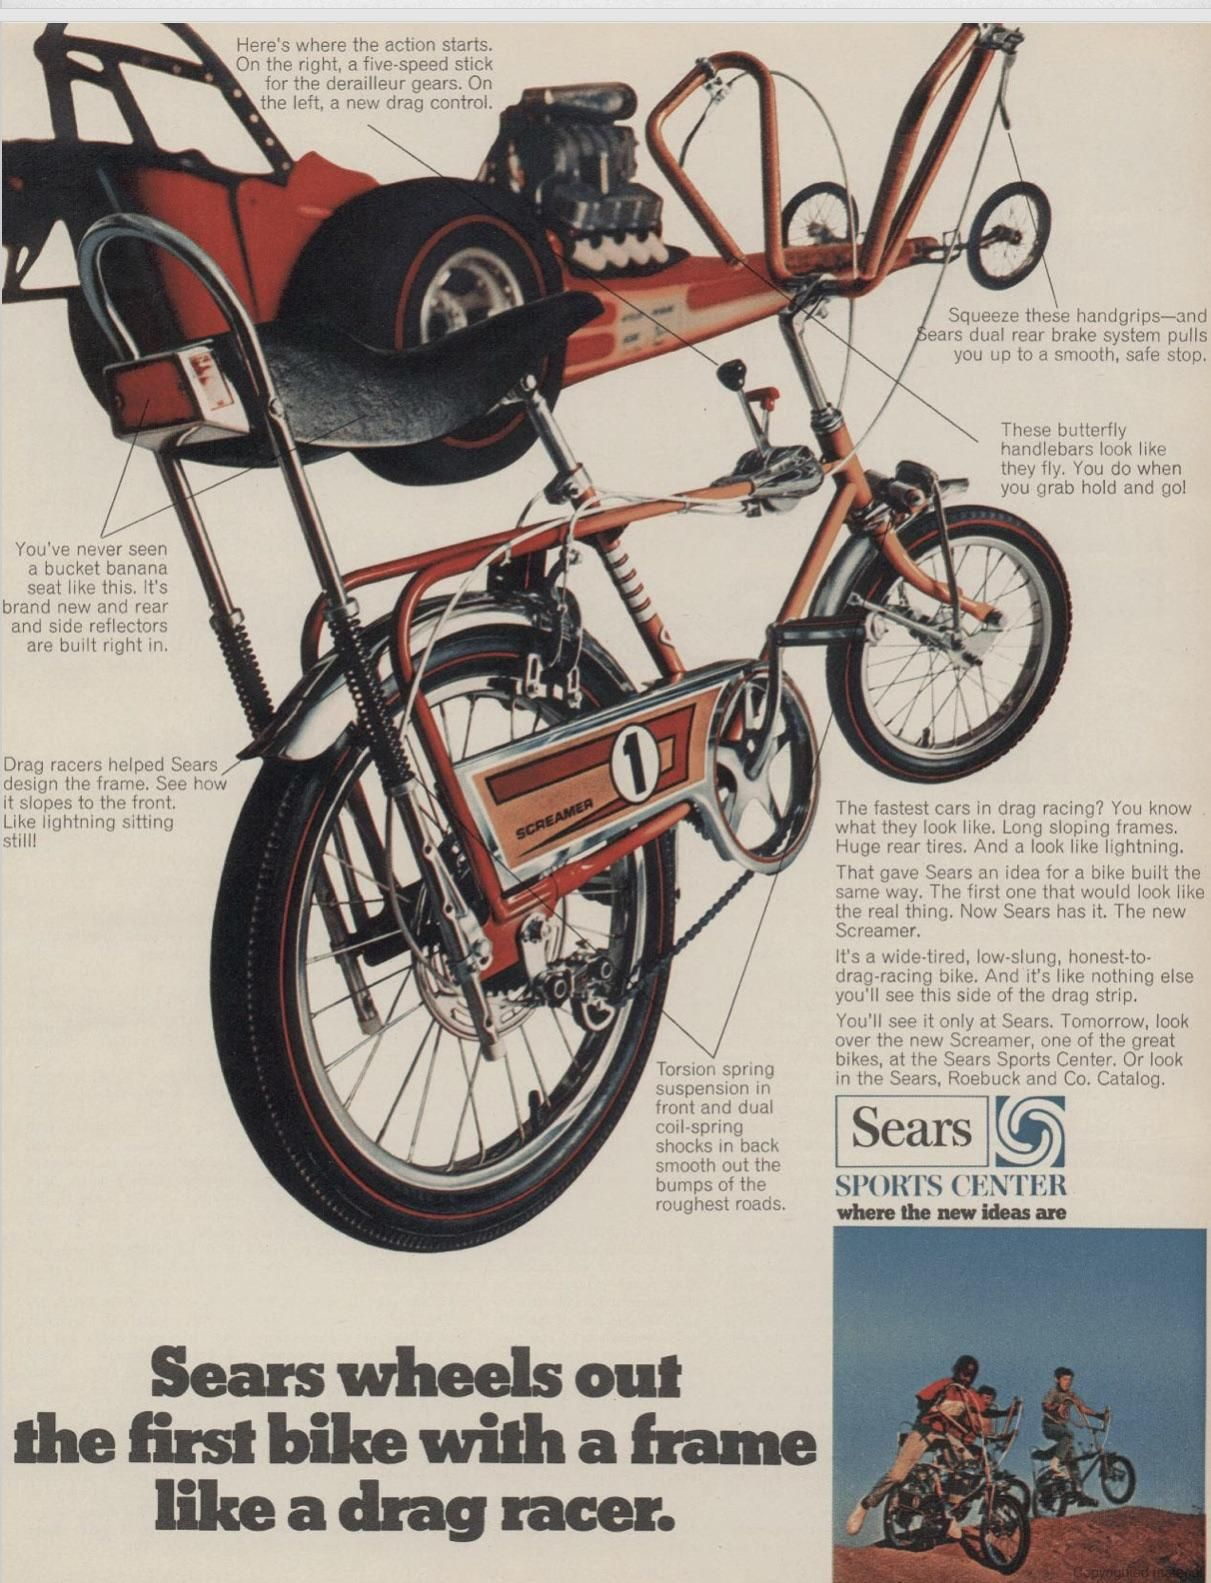 A Dragster Bike From Sears 1966 Vintageads Ads Vintage